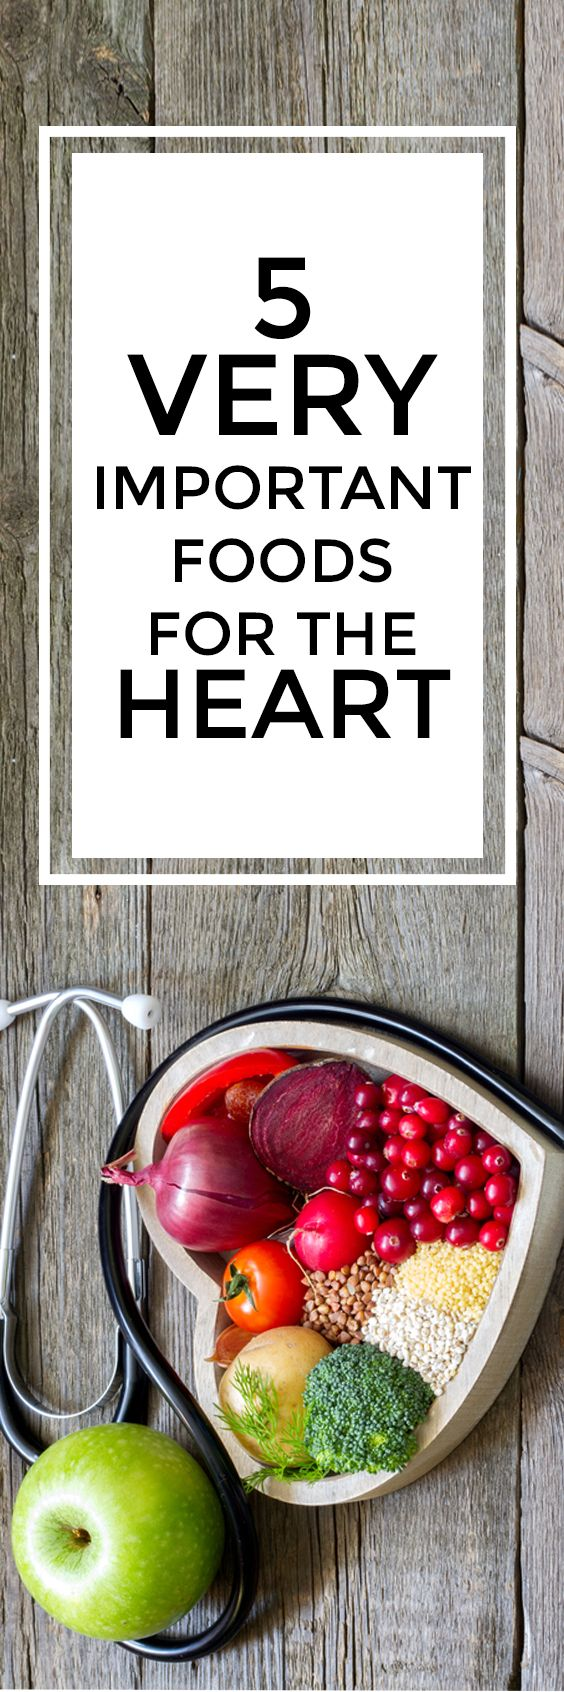 It is important if you want to keep your heart healthy to eat the right diet and maintain the right weight. The heart is responsible for pumping blood to your organs. It is a vital organ in the body without which one will die. Therefore, it must be properly taken care of. The food youRead More